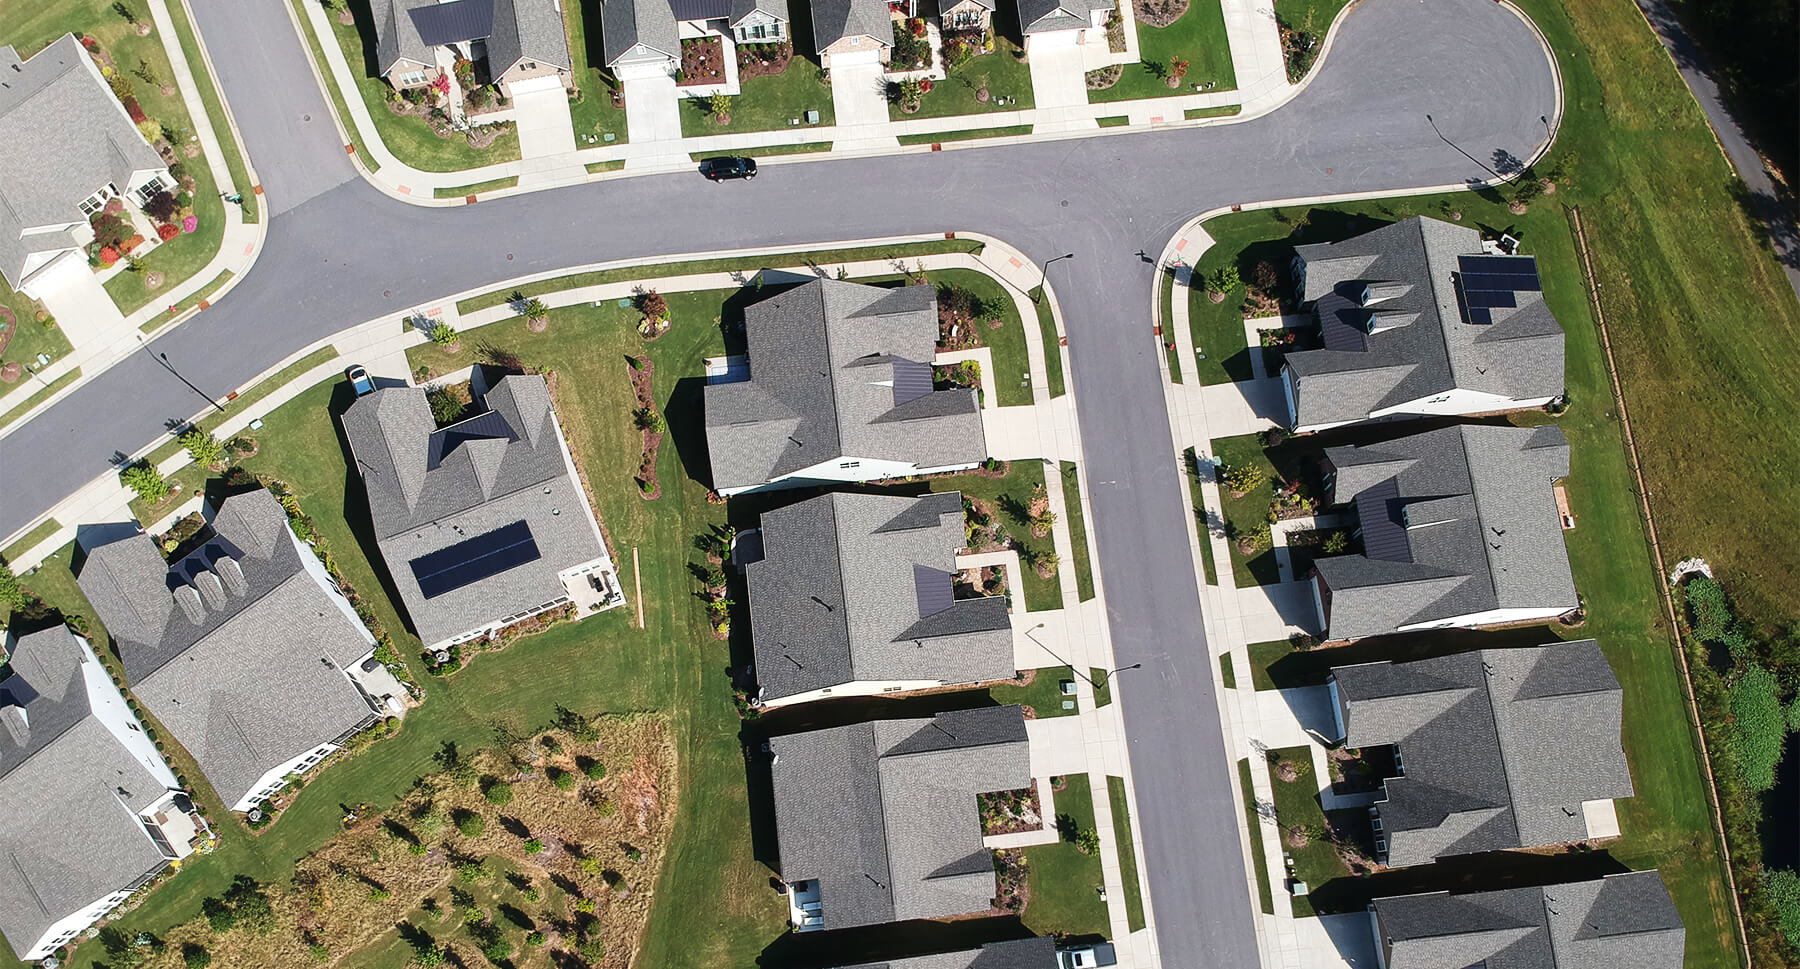 Aerial view of a neighborhood street with two homes that have solar systems